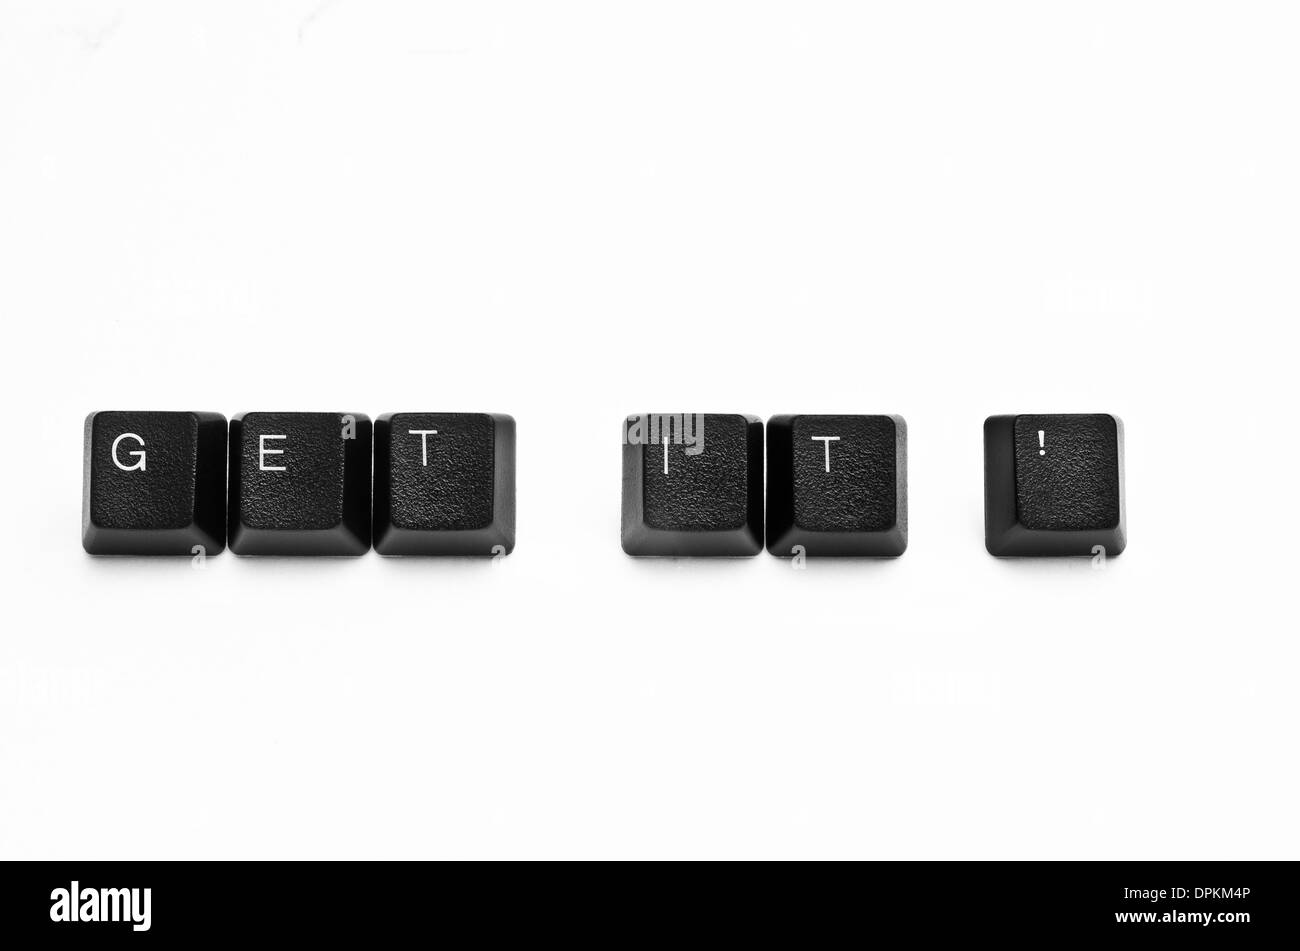 Words created with computer keyboard buttons on white background - Stock Image